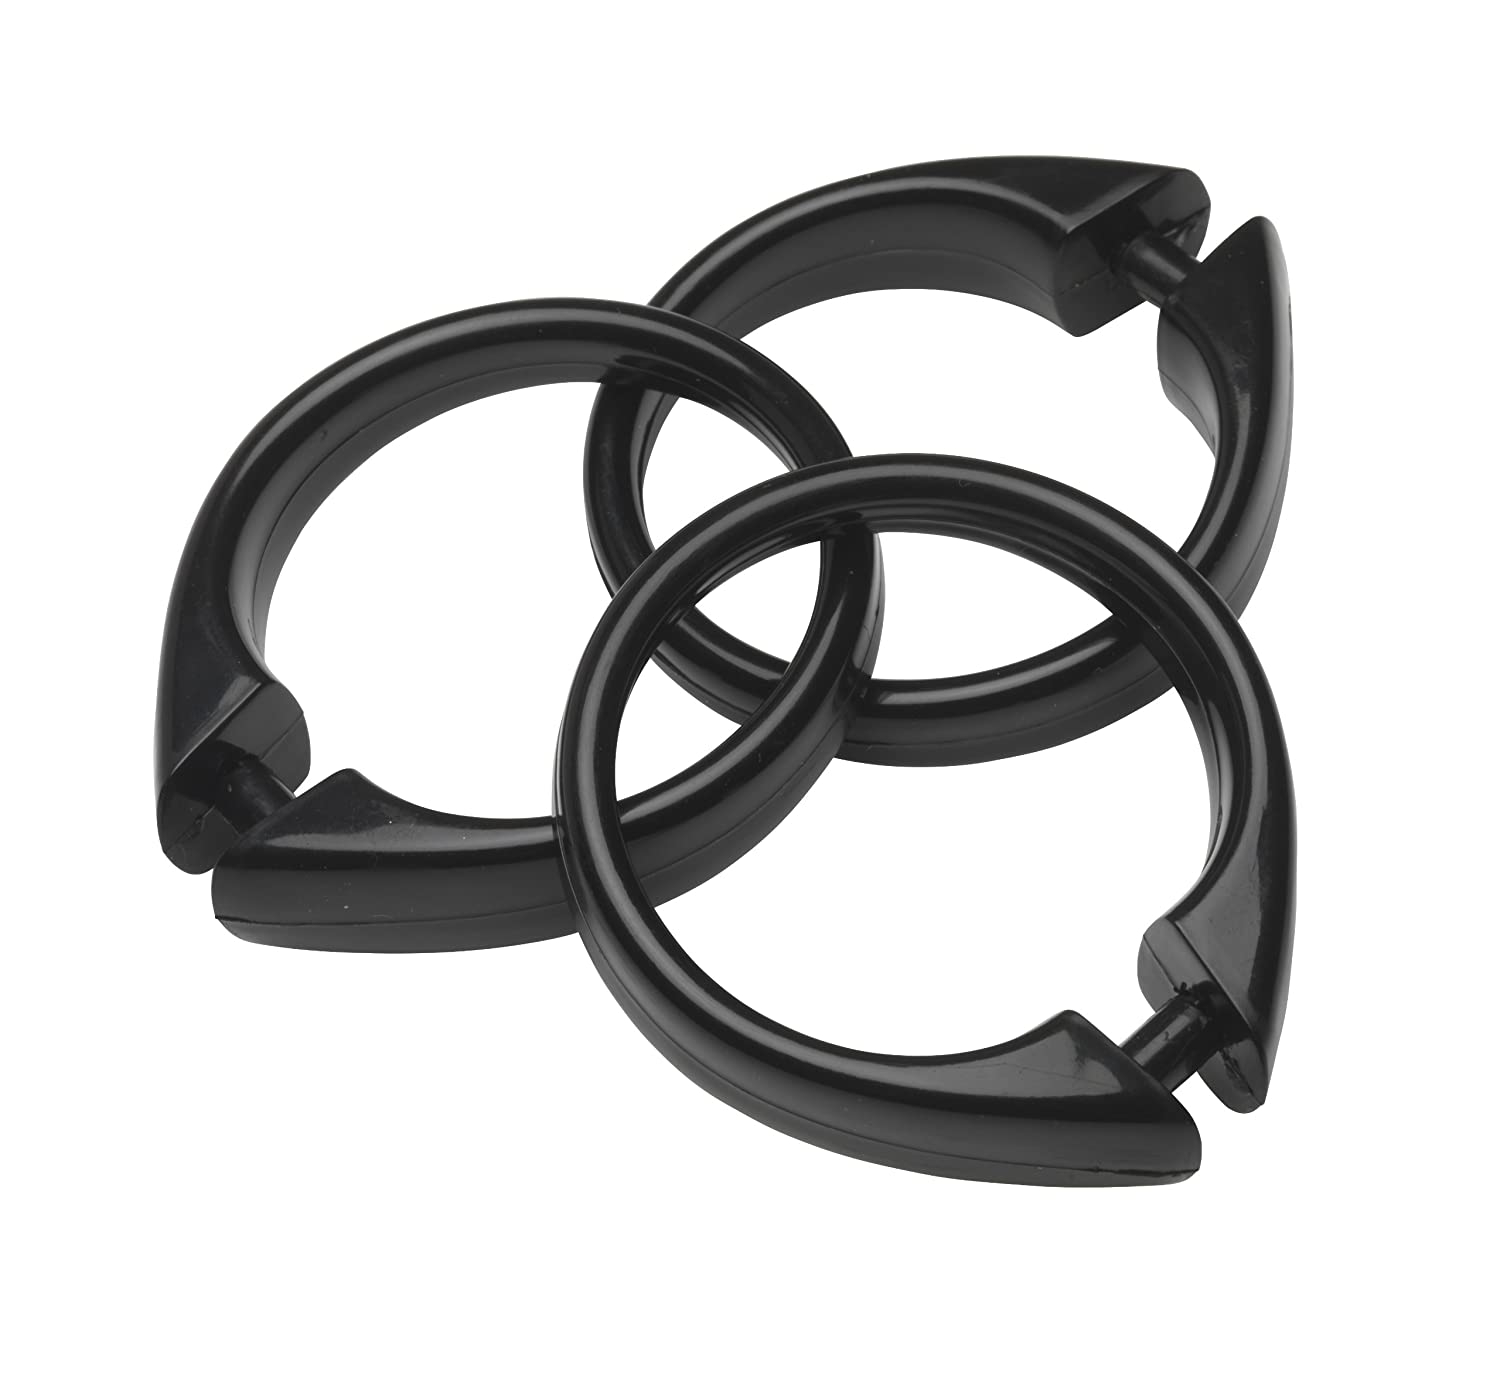 set hrmx rings hub of plastic accessories centre black